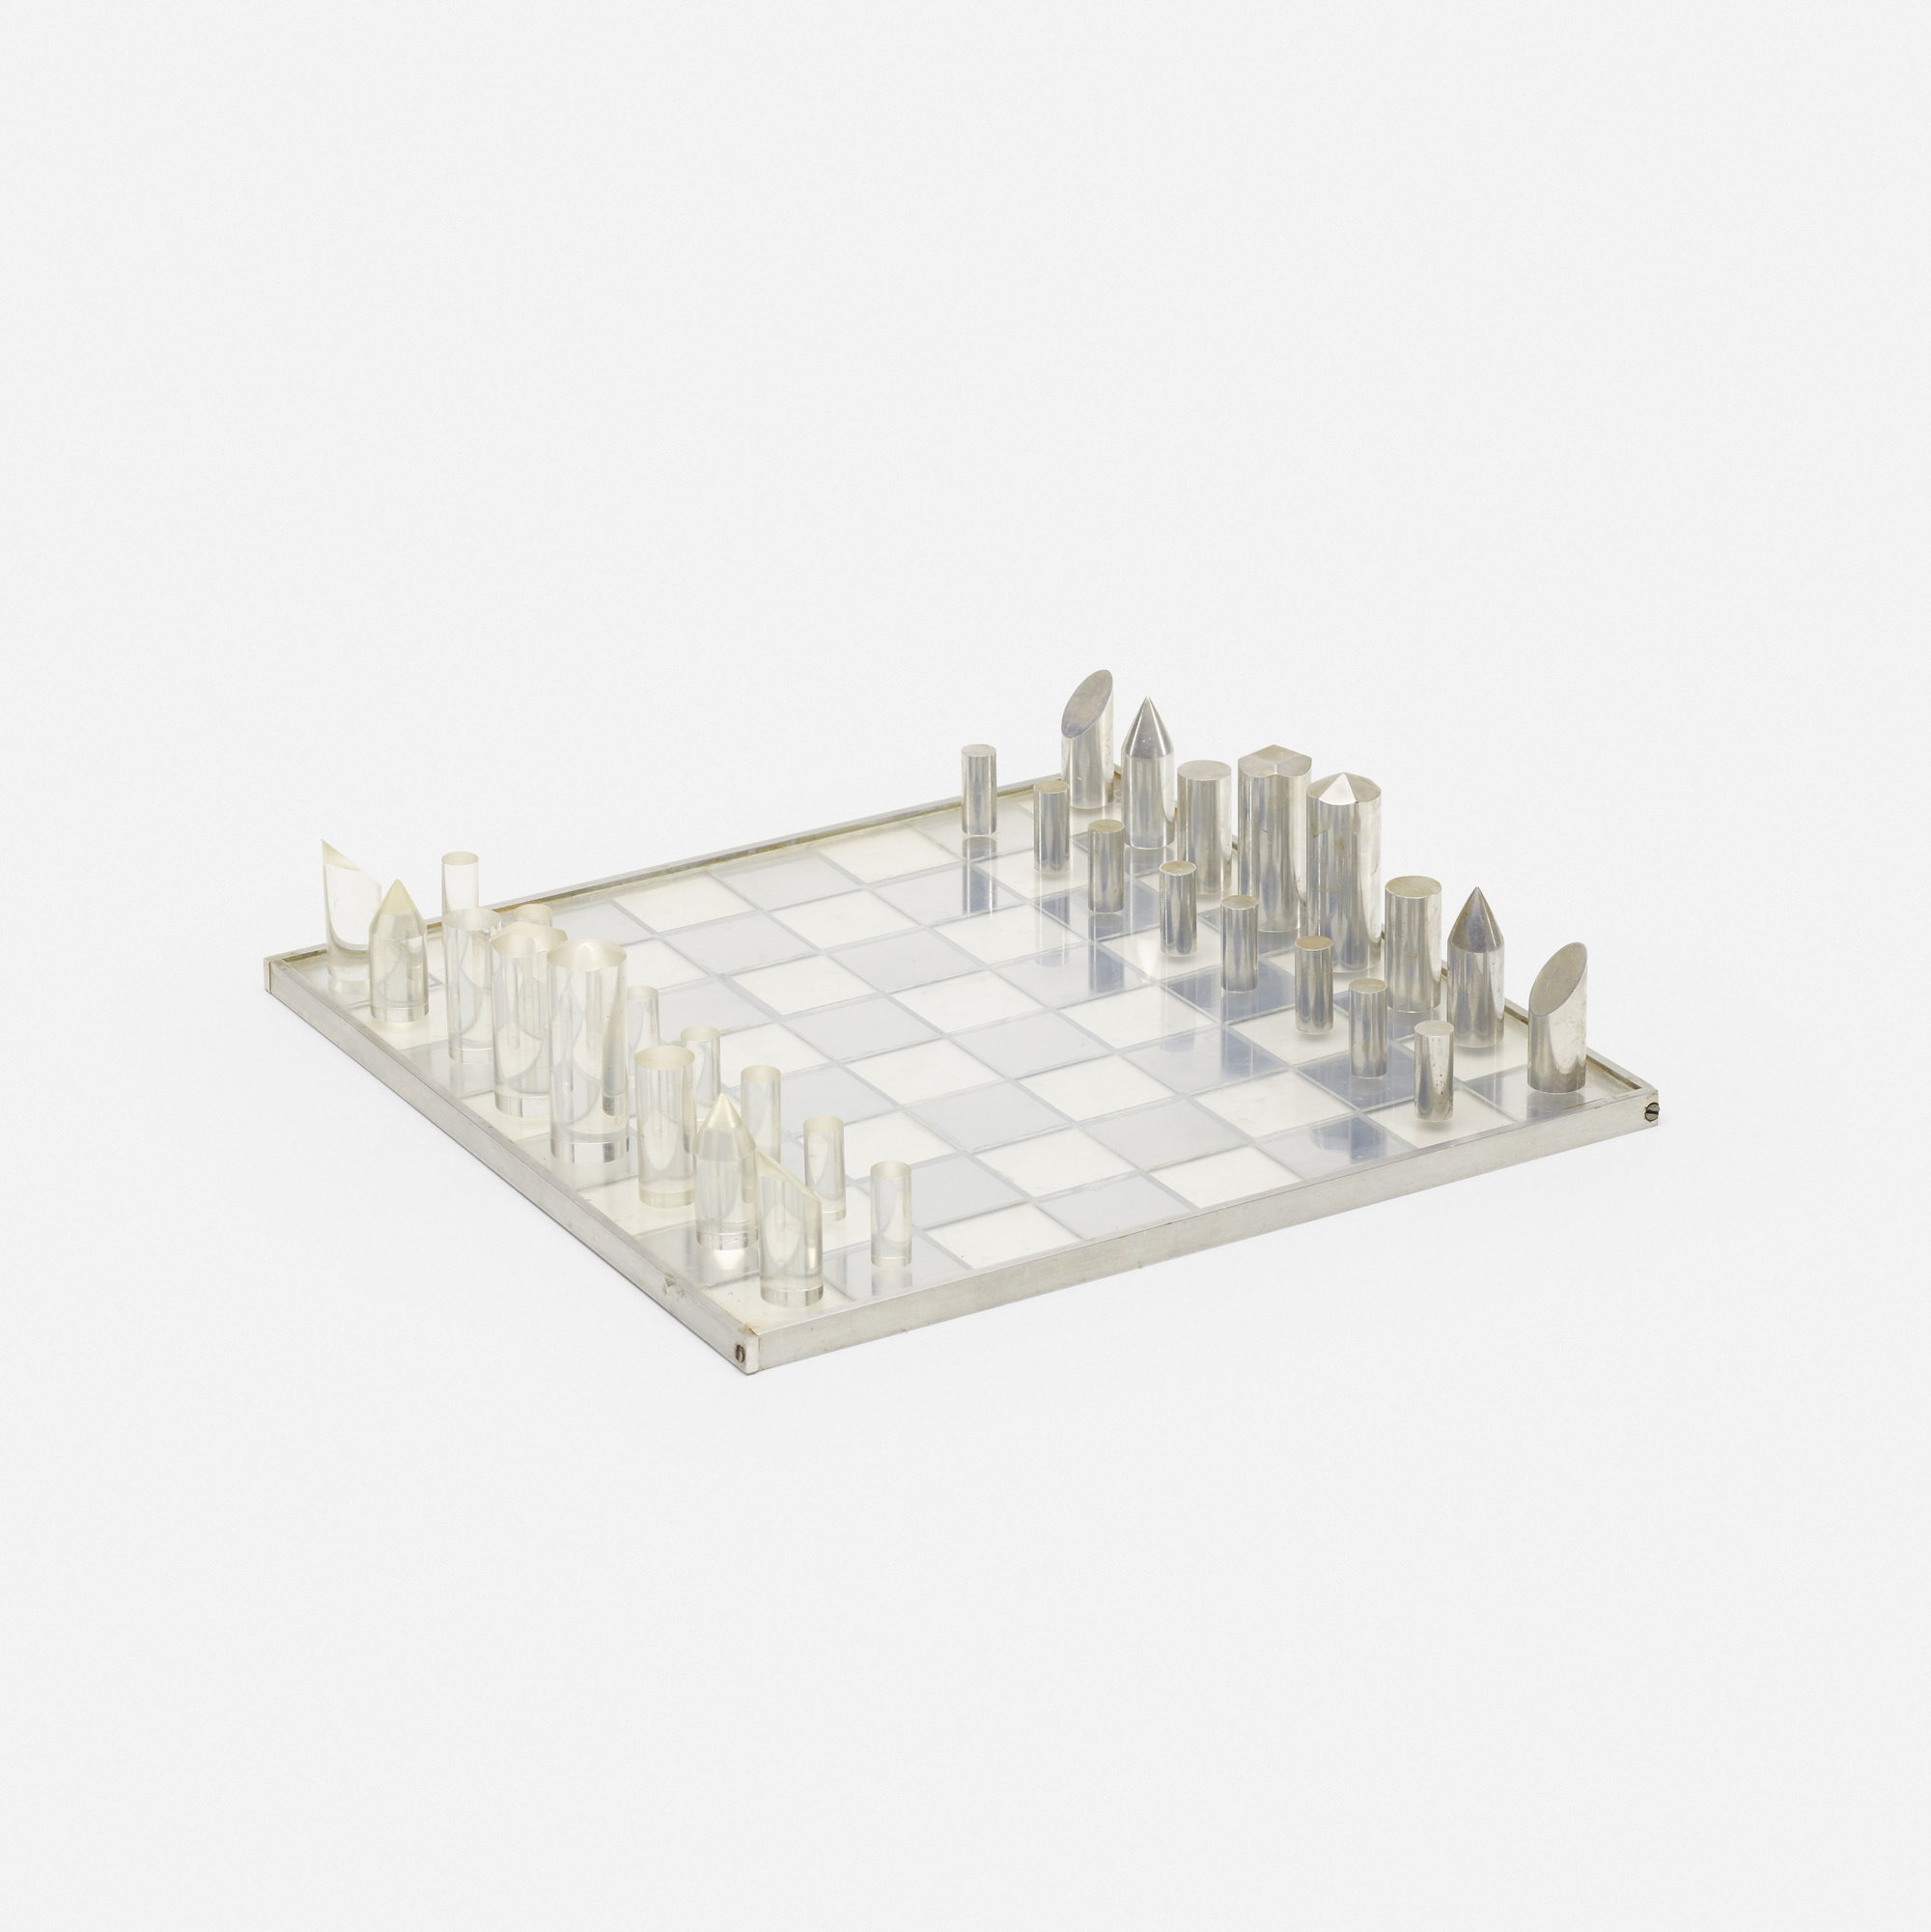 609: Modernist / chess set (1 of 2)